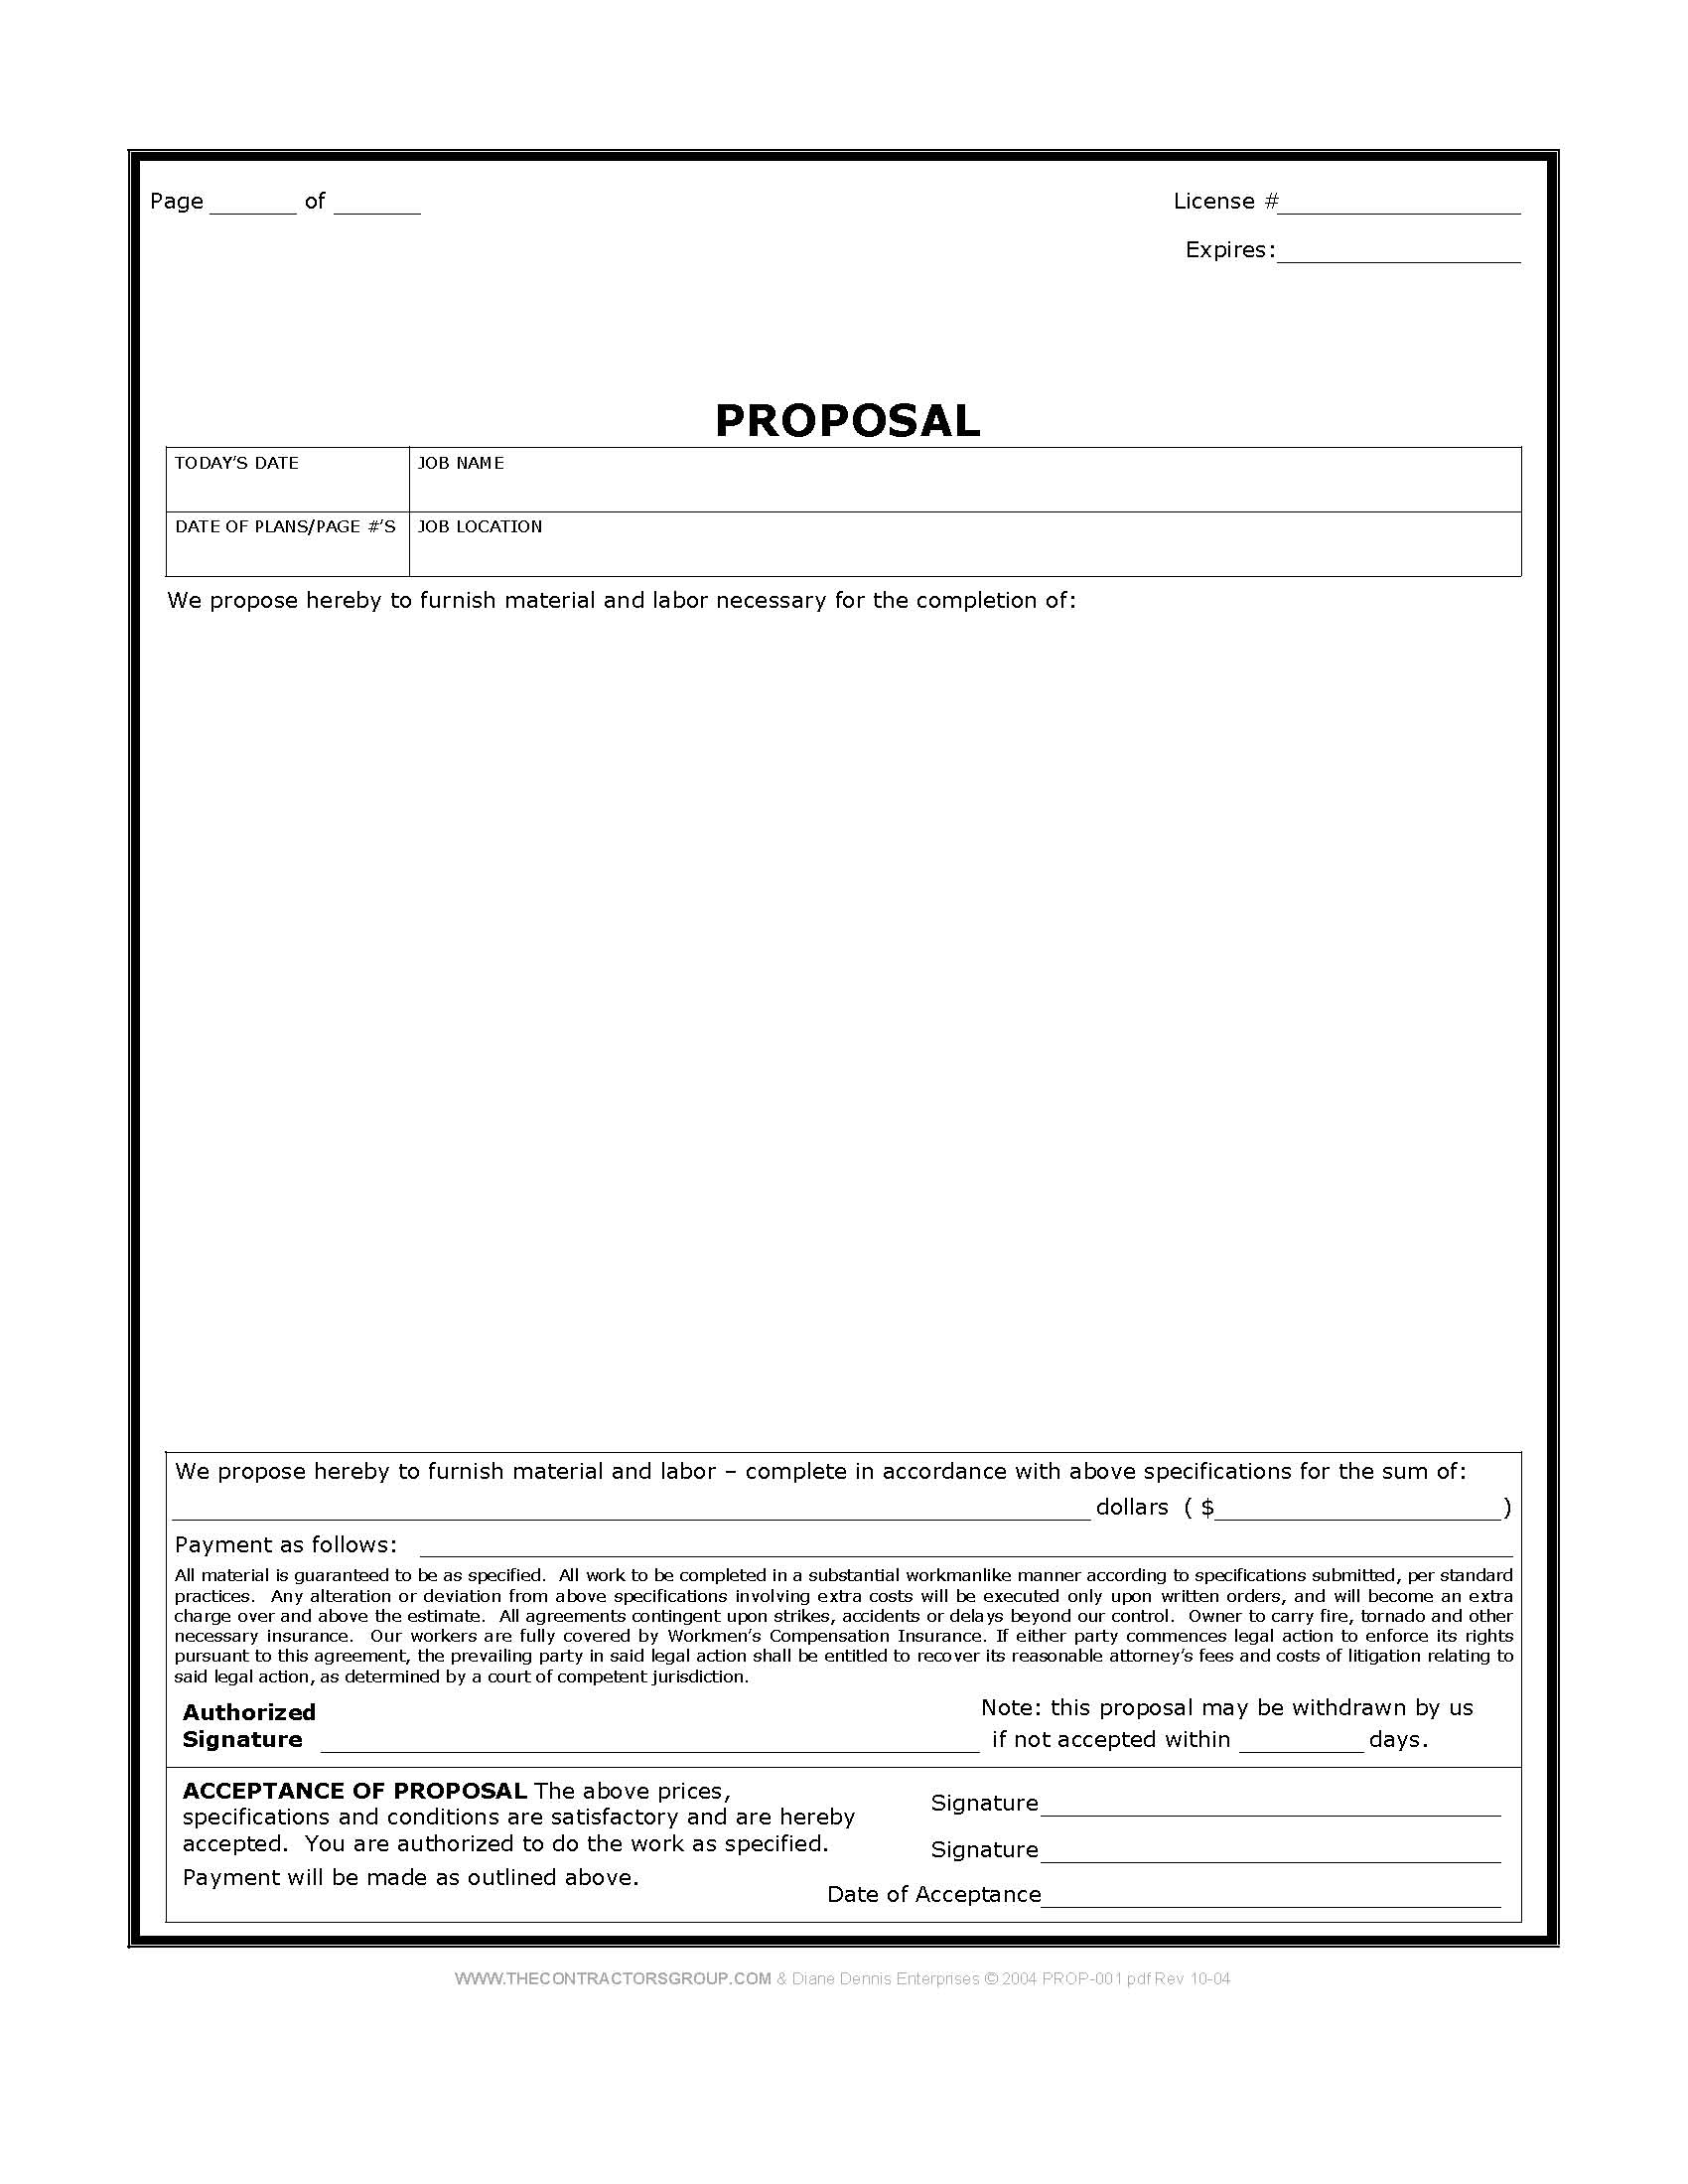 Construction Forms Form Unusual Templates Free Steel Inc Proposal And Construction Estimate Forms Free